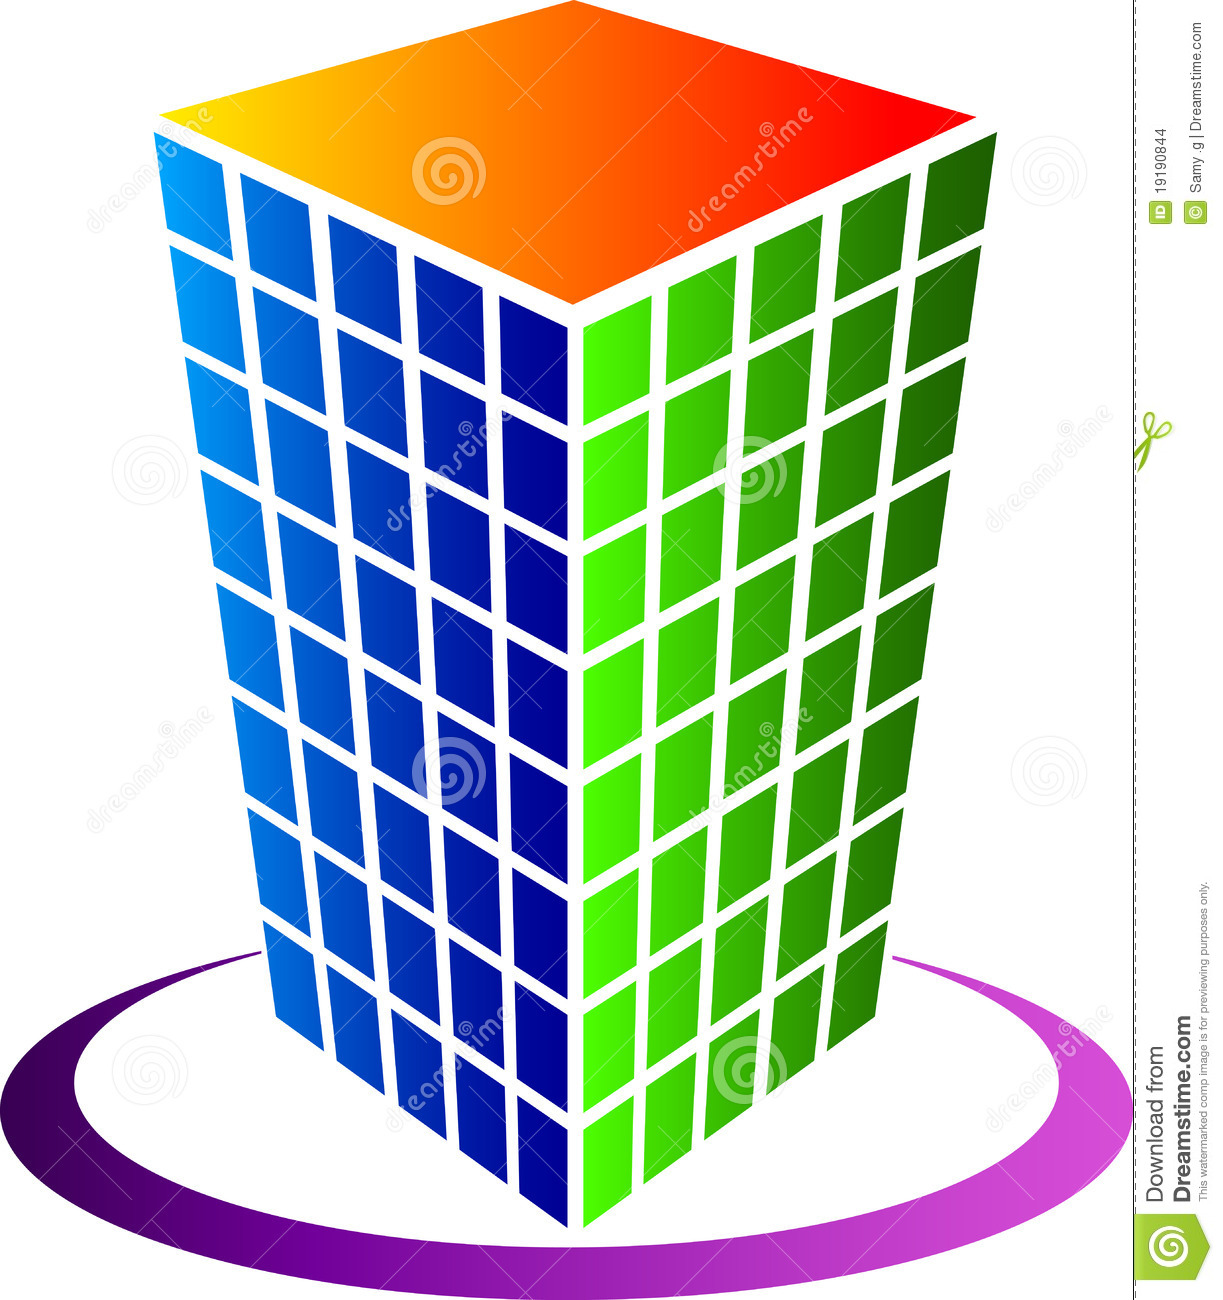 Building logo clipart image free download Building Logo Stock Images - Image: 19190844 image free download